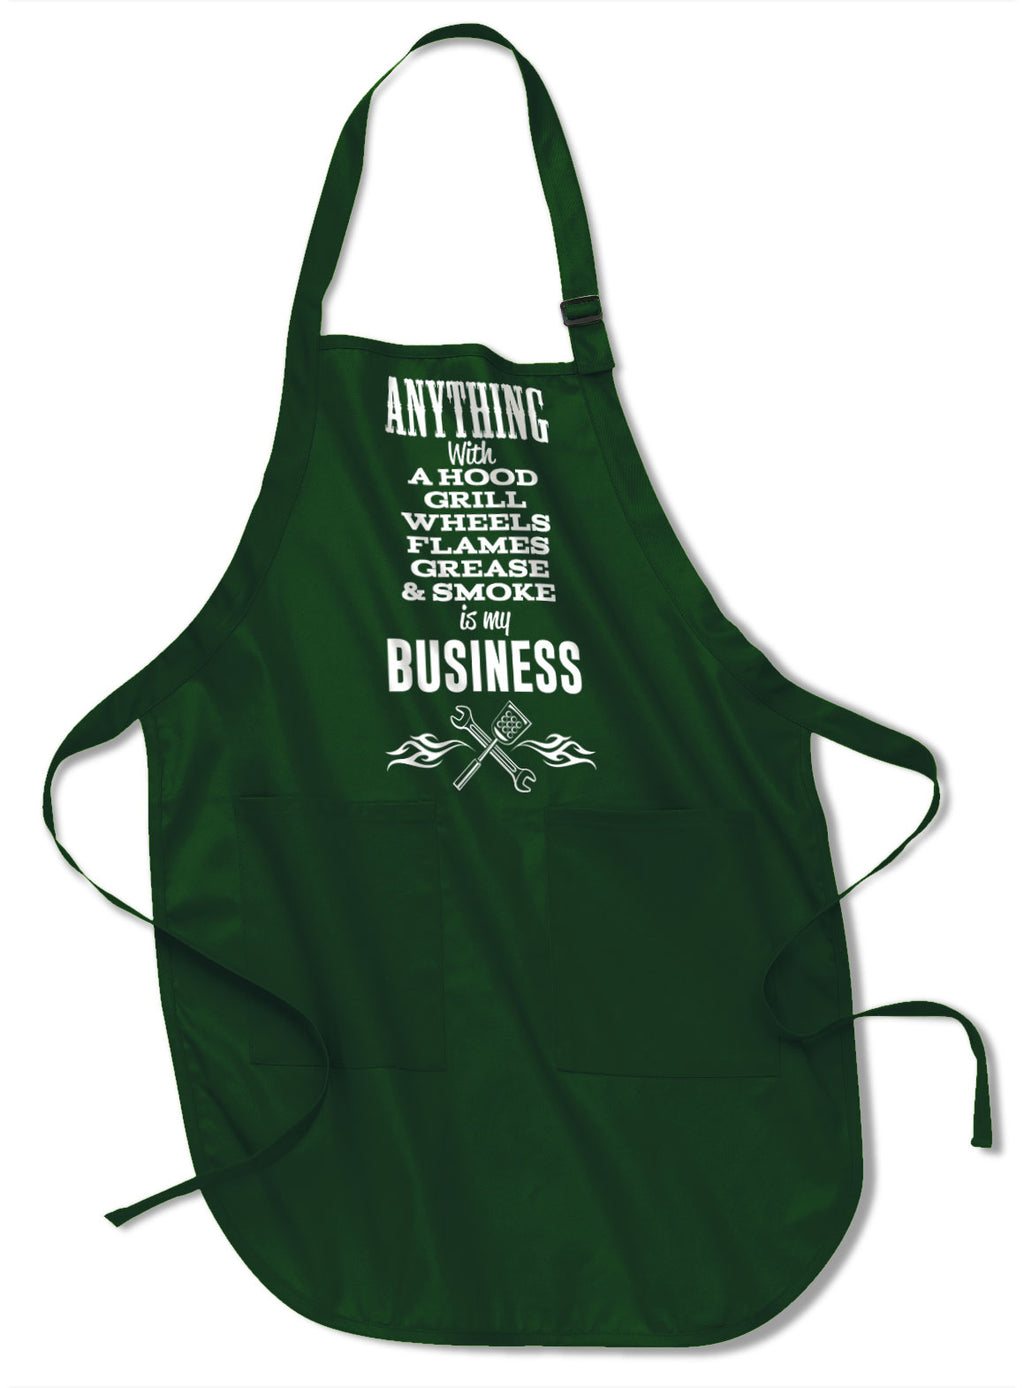 Anything with A Hood, Wheels, Grill, Flames, Grease & Smoke is my Business Apron - BBQ Apron